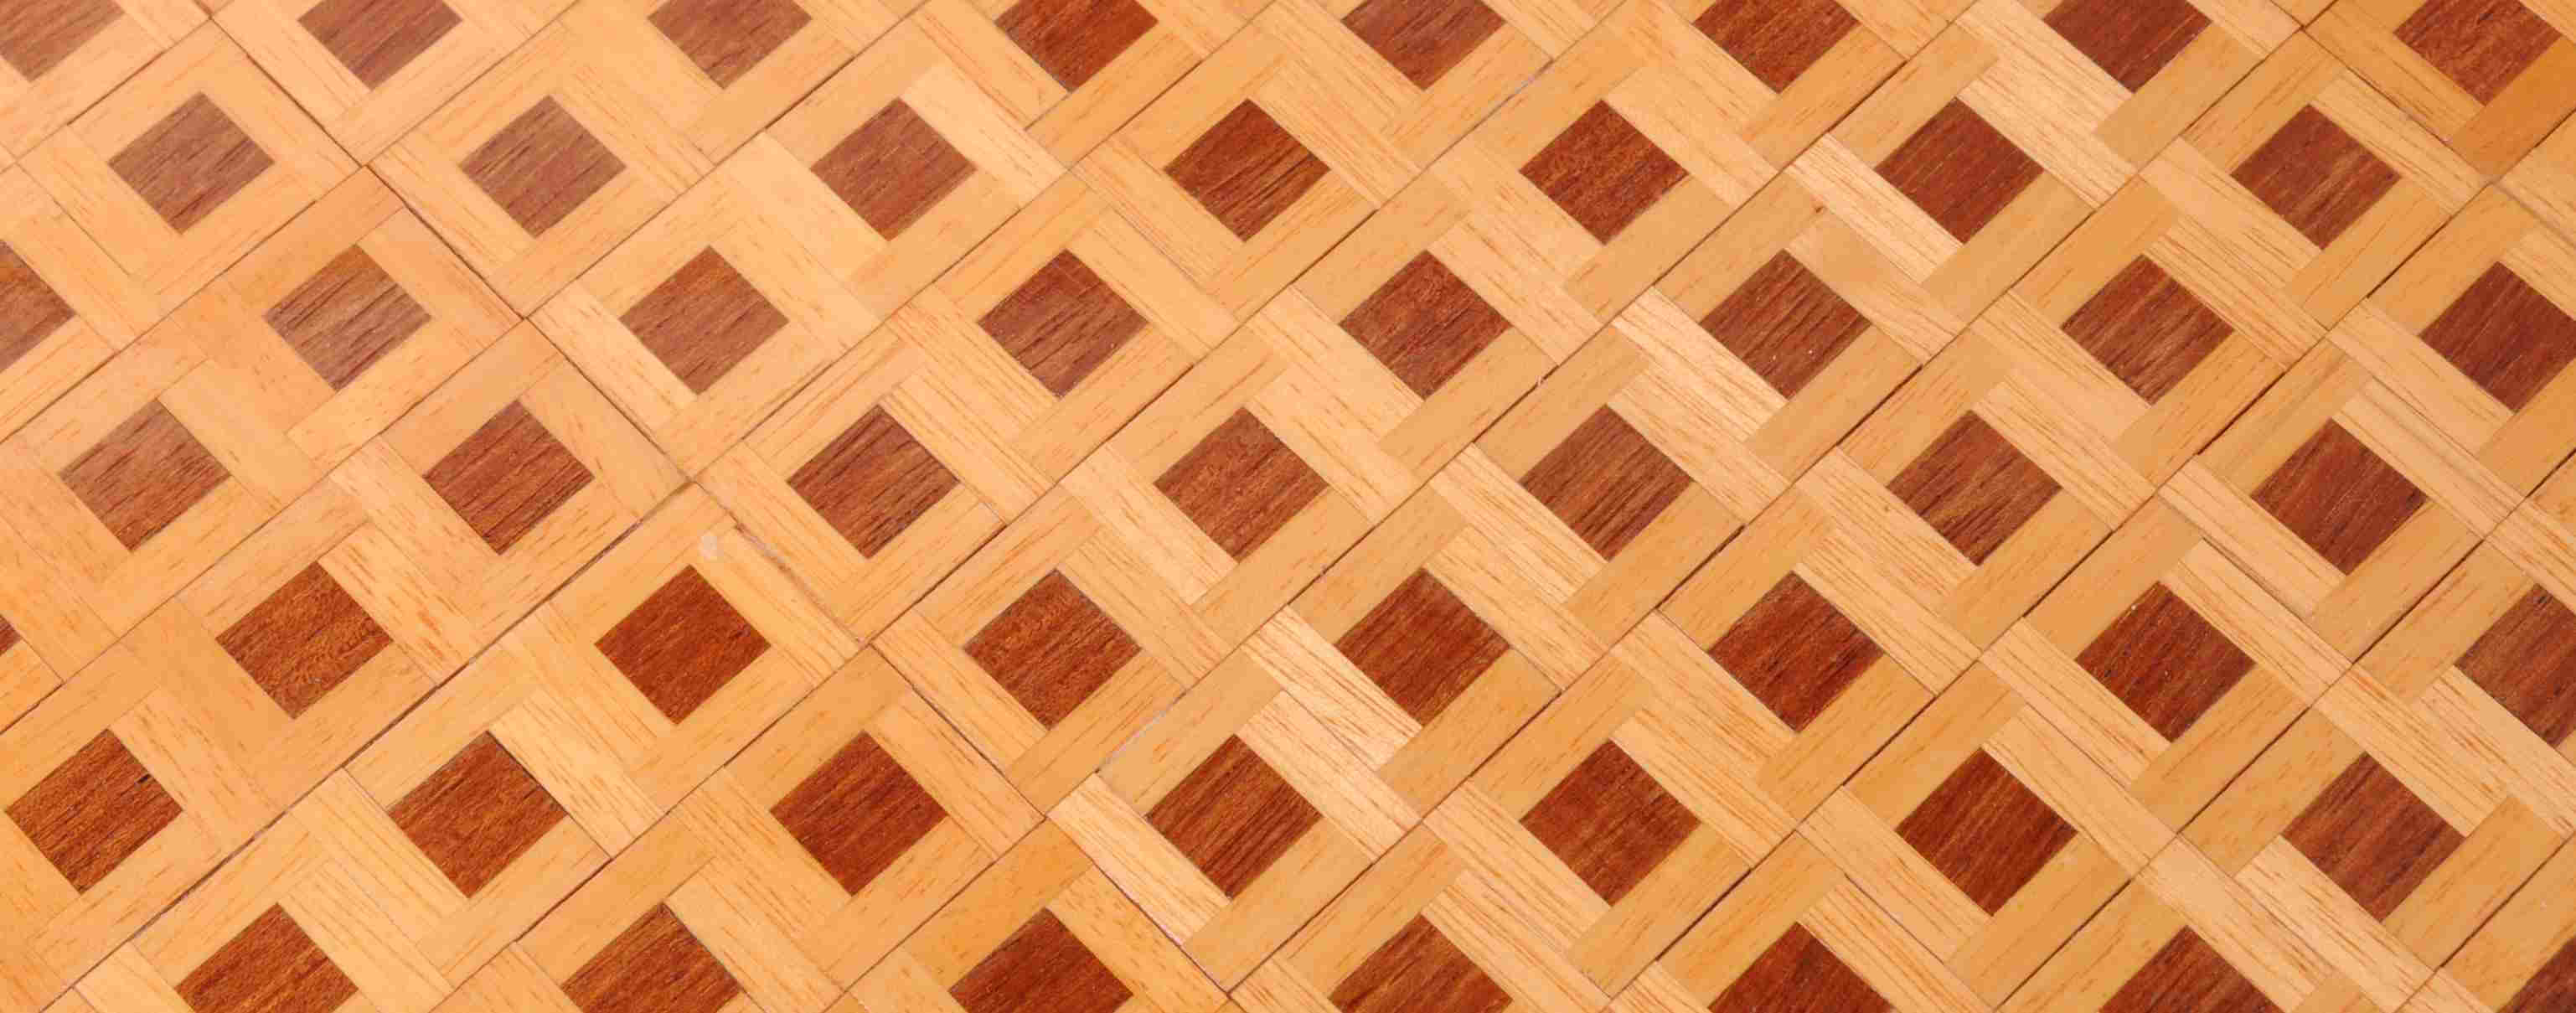 Floorboards and parquet flooring